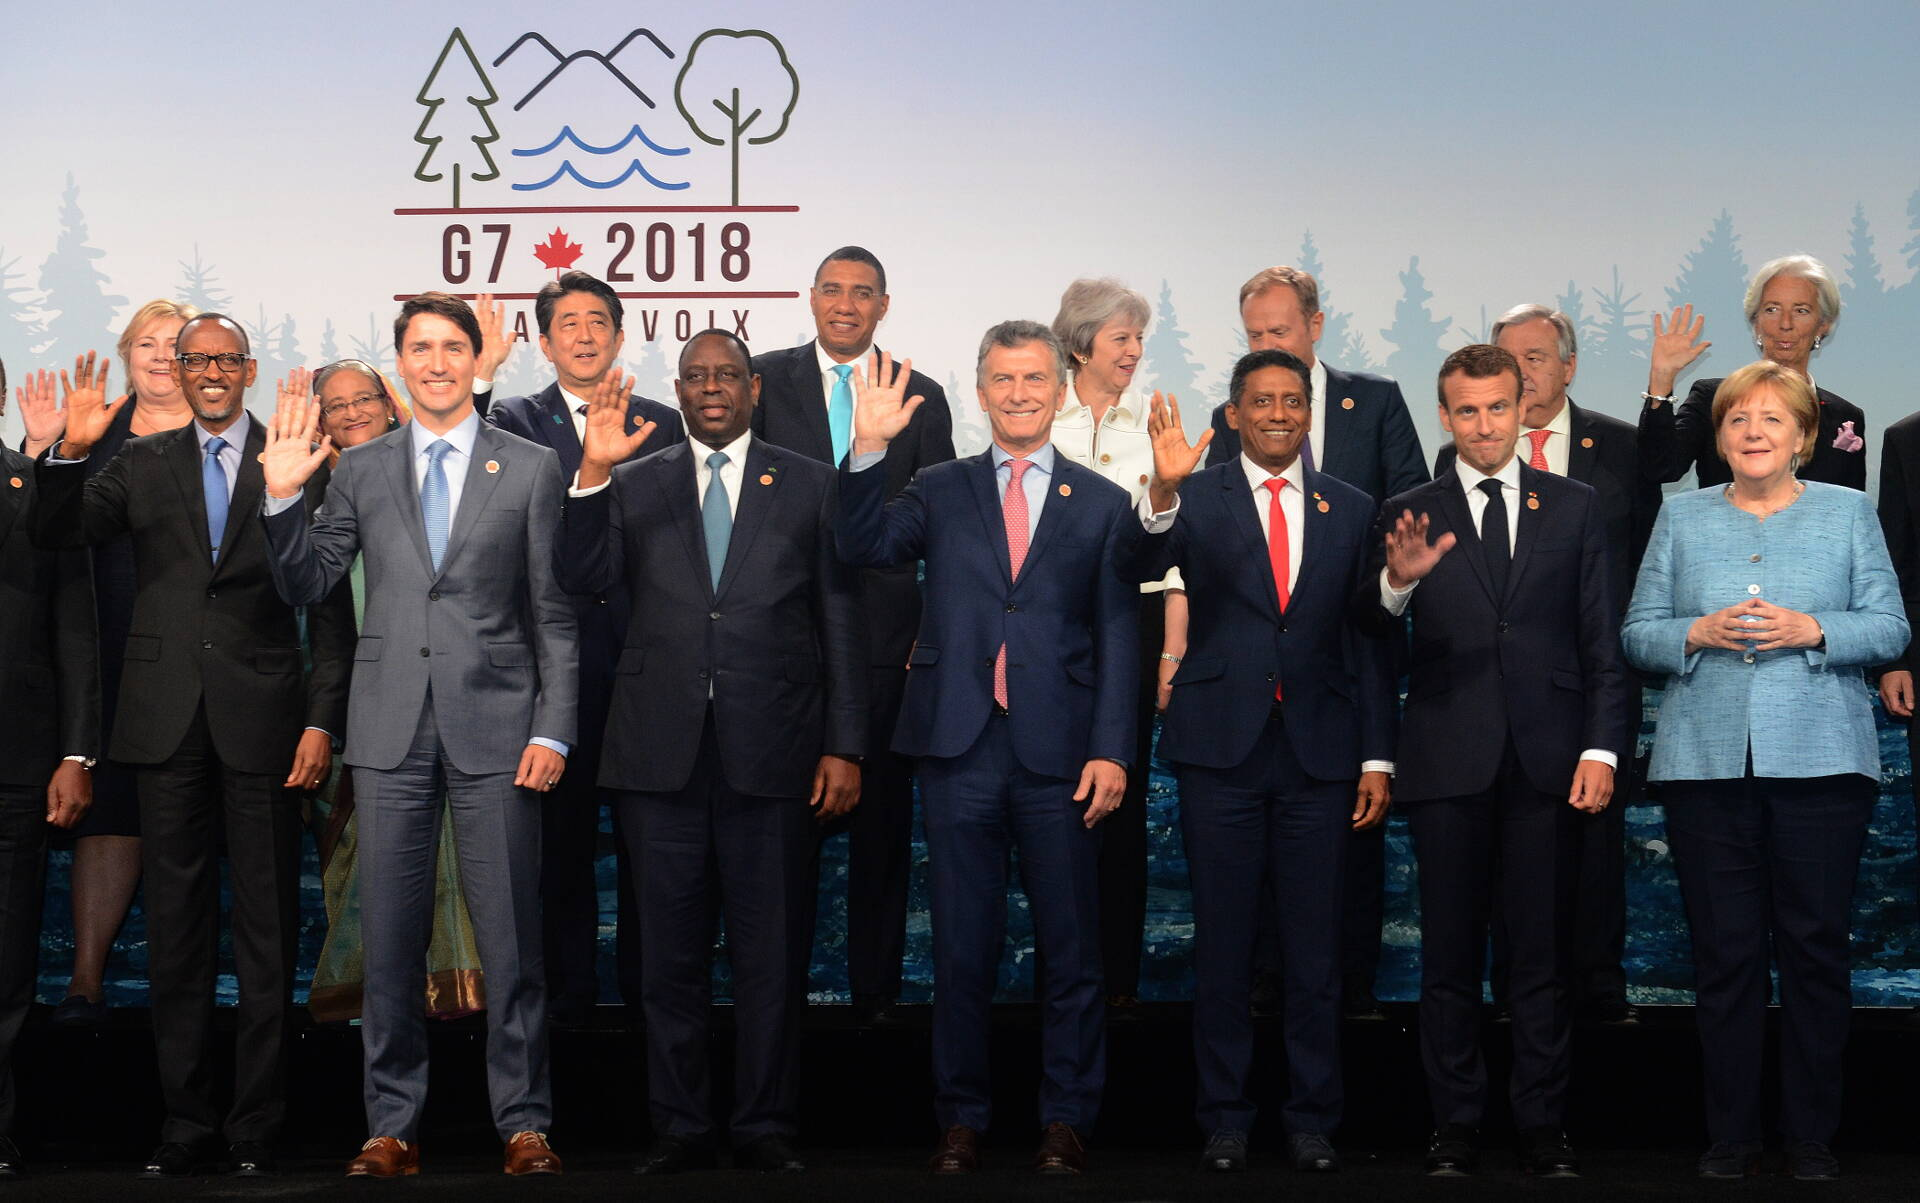 World leaders pose for group photo during 2018 g7 meeting.